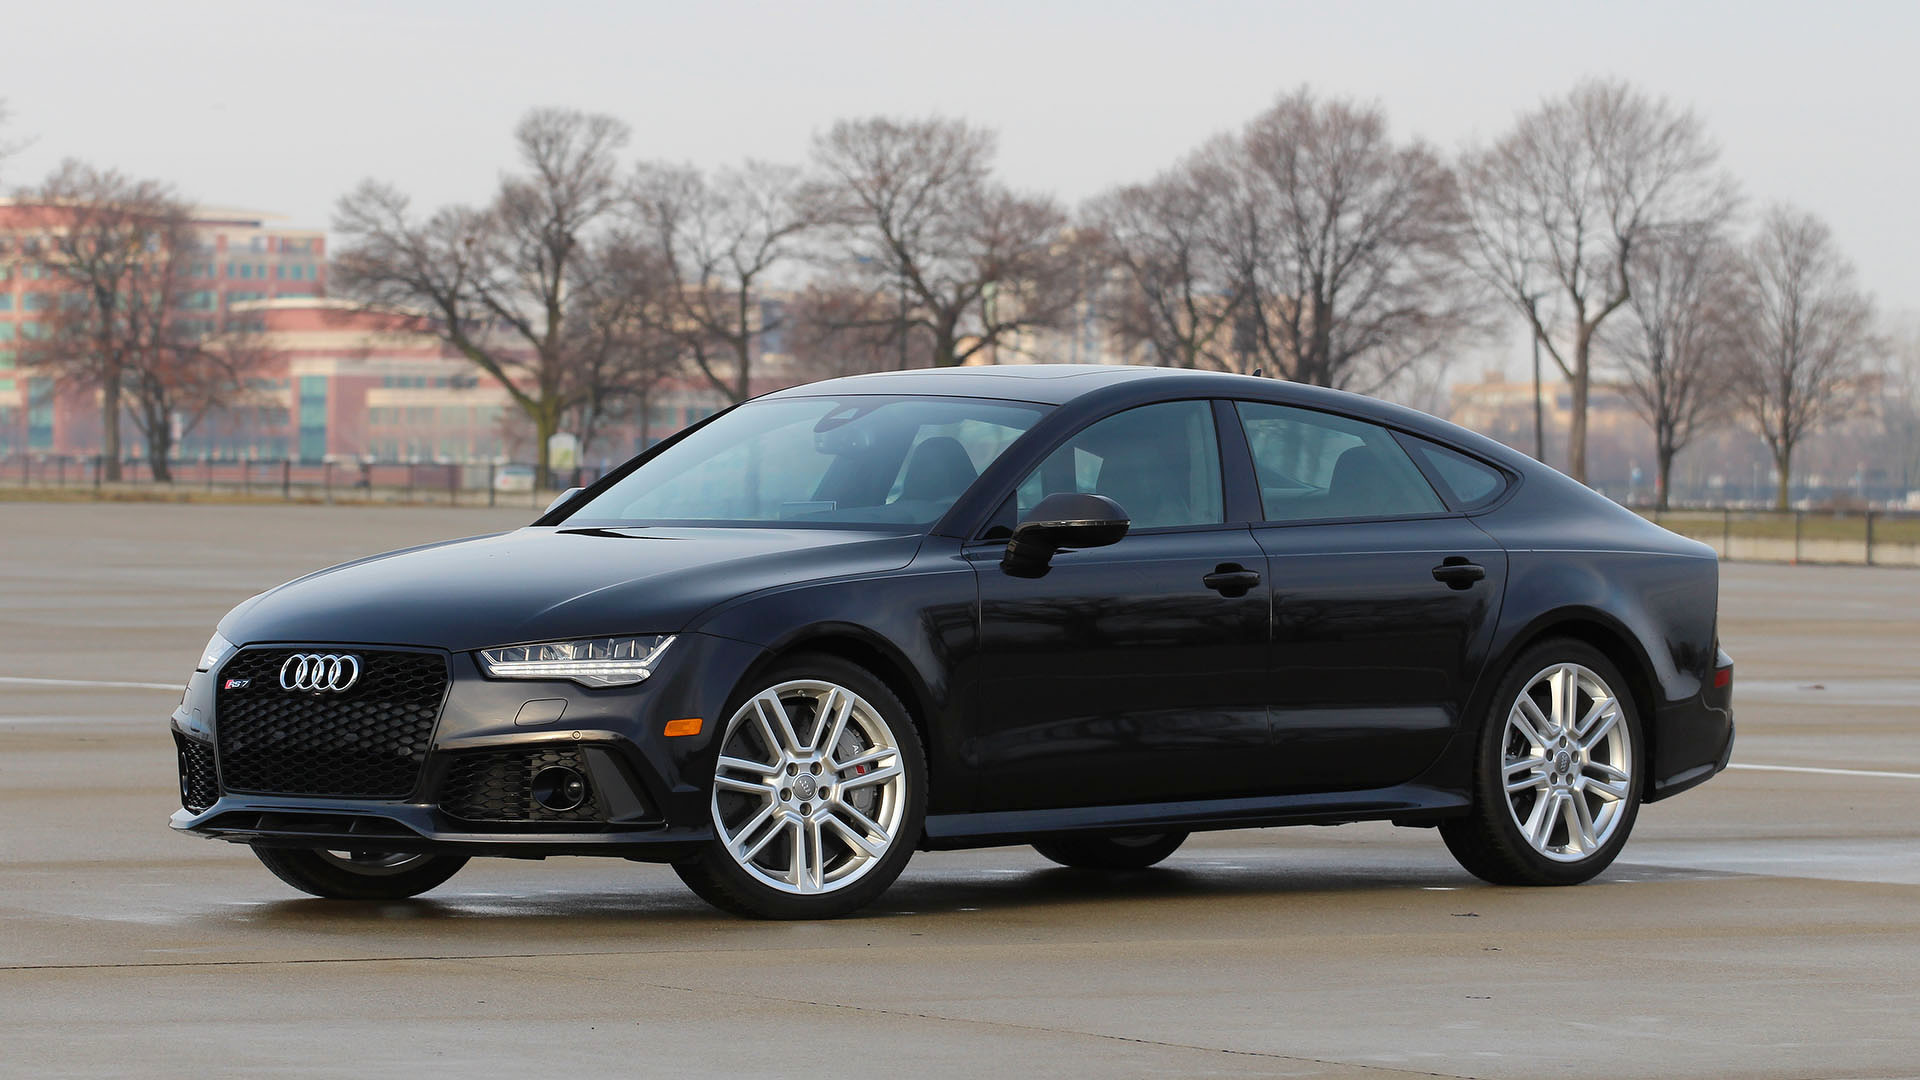 Audi Rs7 0 60 >> 2017 Audi RS7 Review: The only car you'll ever need